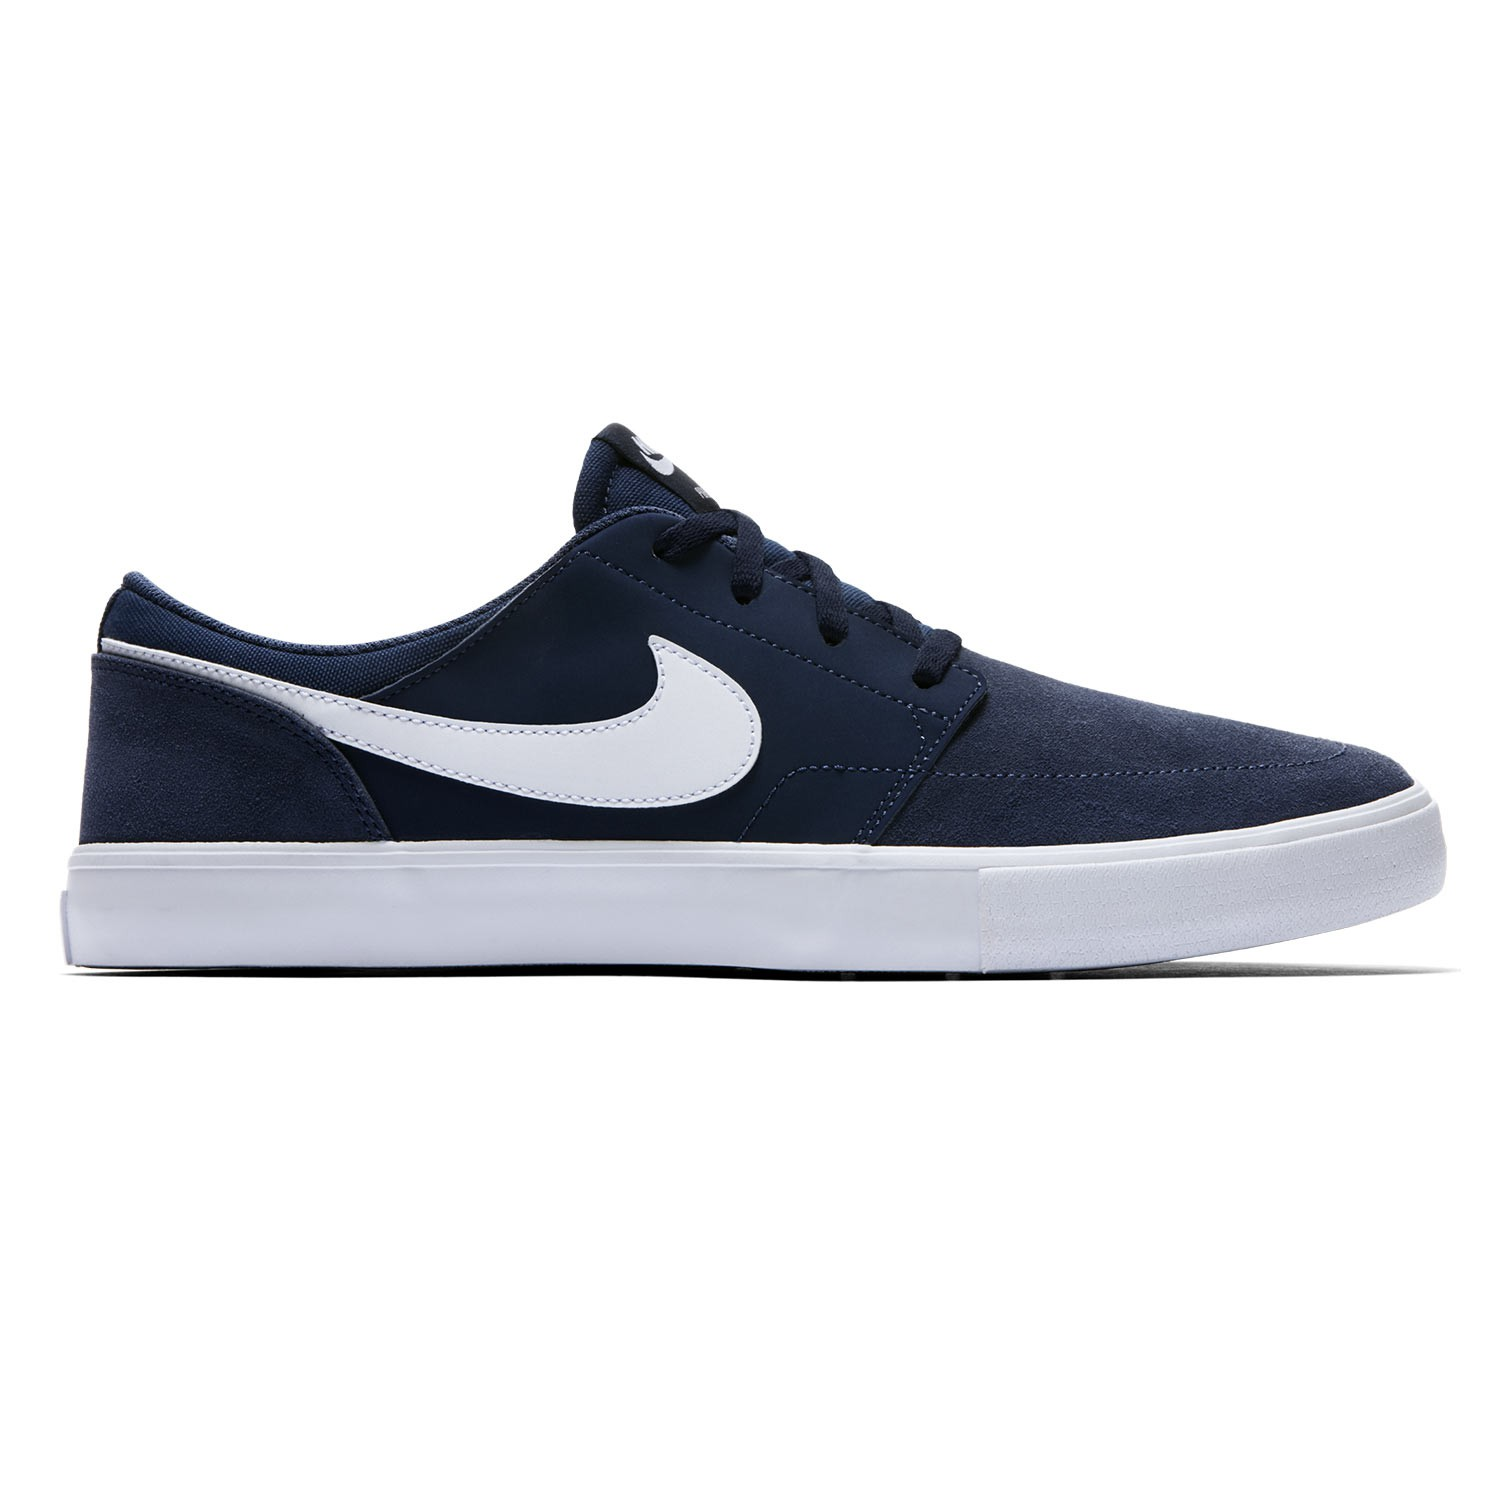 tenisky nike sb solarsoft portmore ii midnight navy white black snowboard zezula. Black Bedroom Furniture Sets. Home Design Ideas